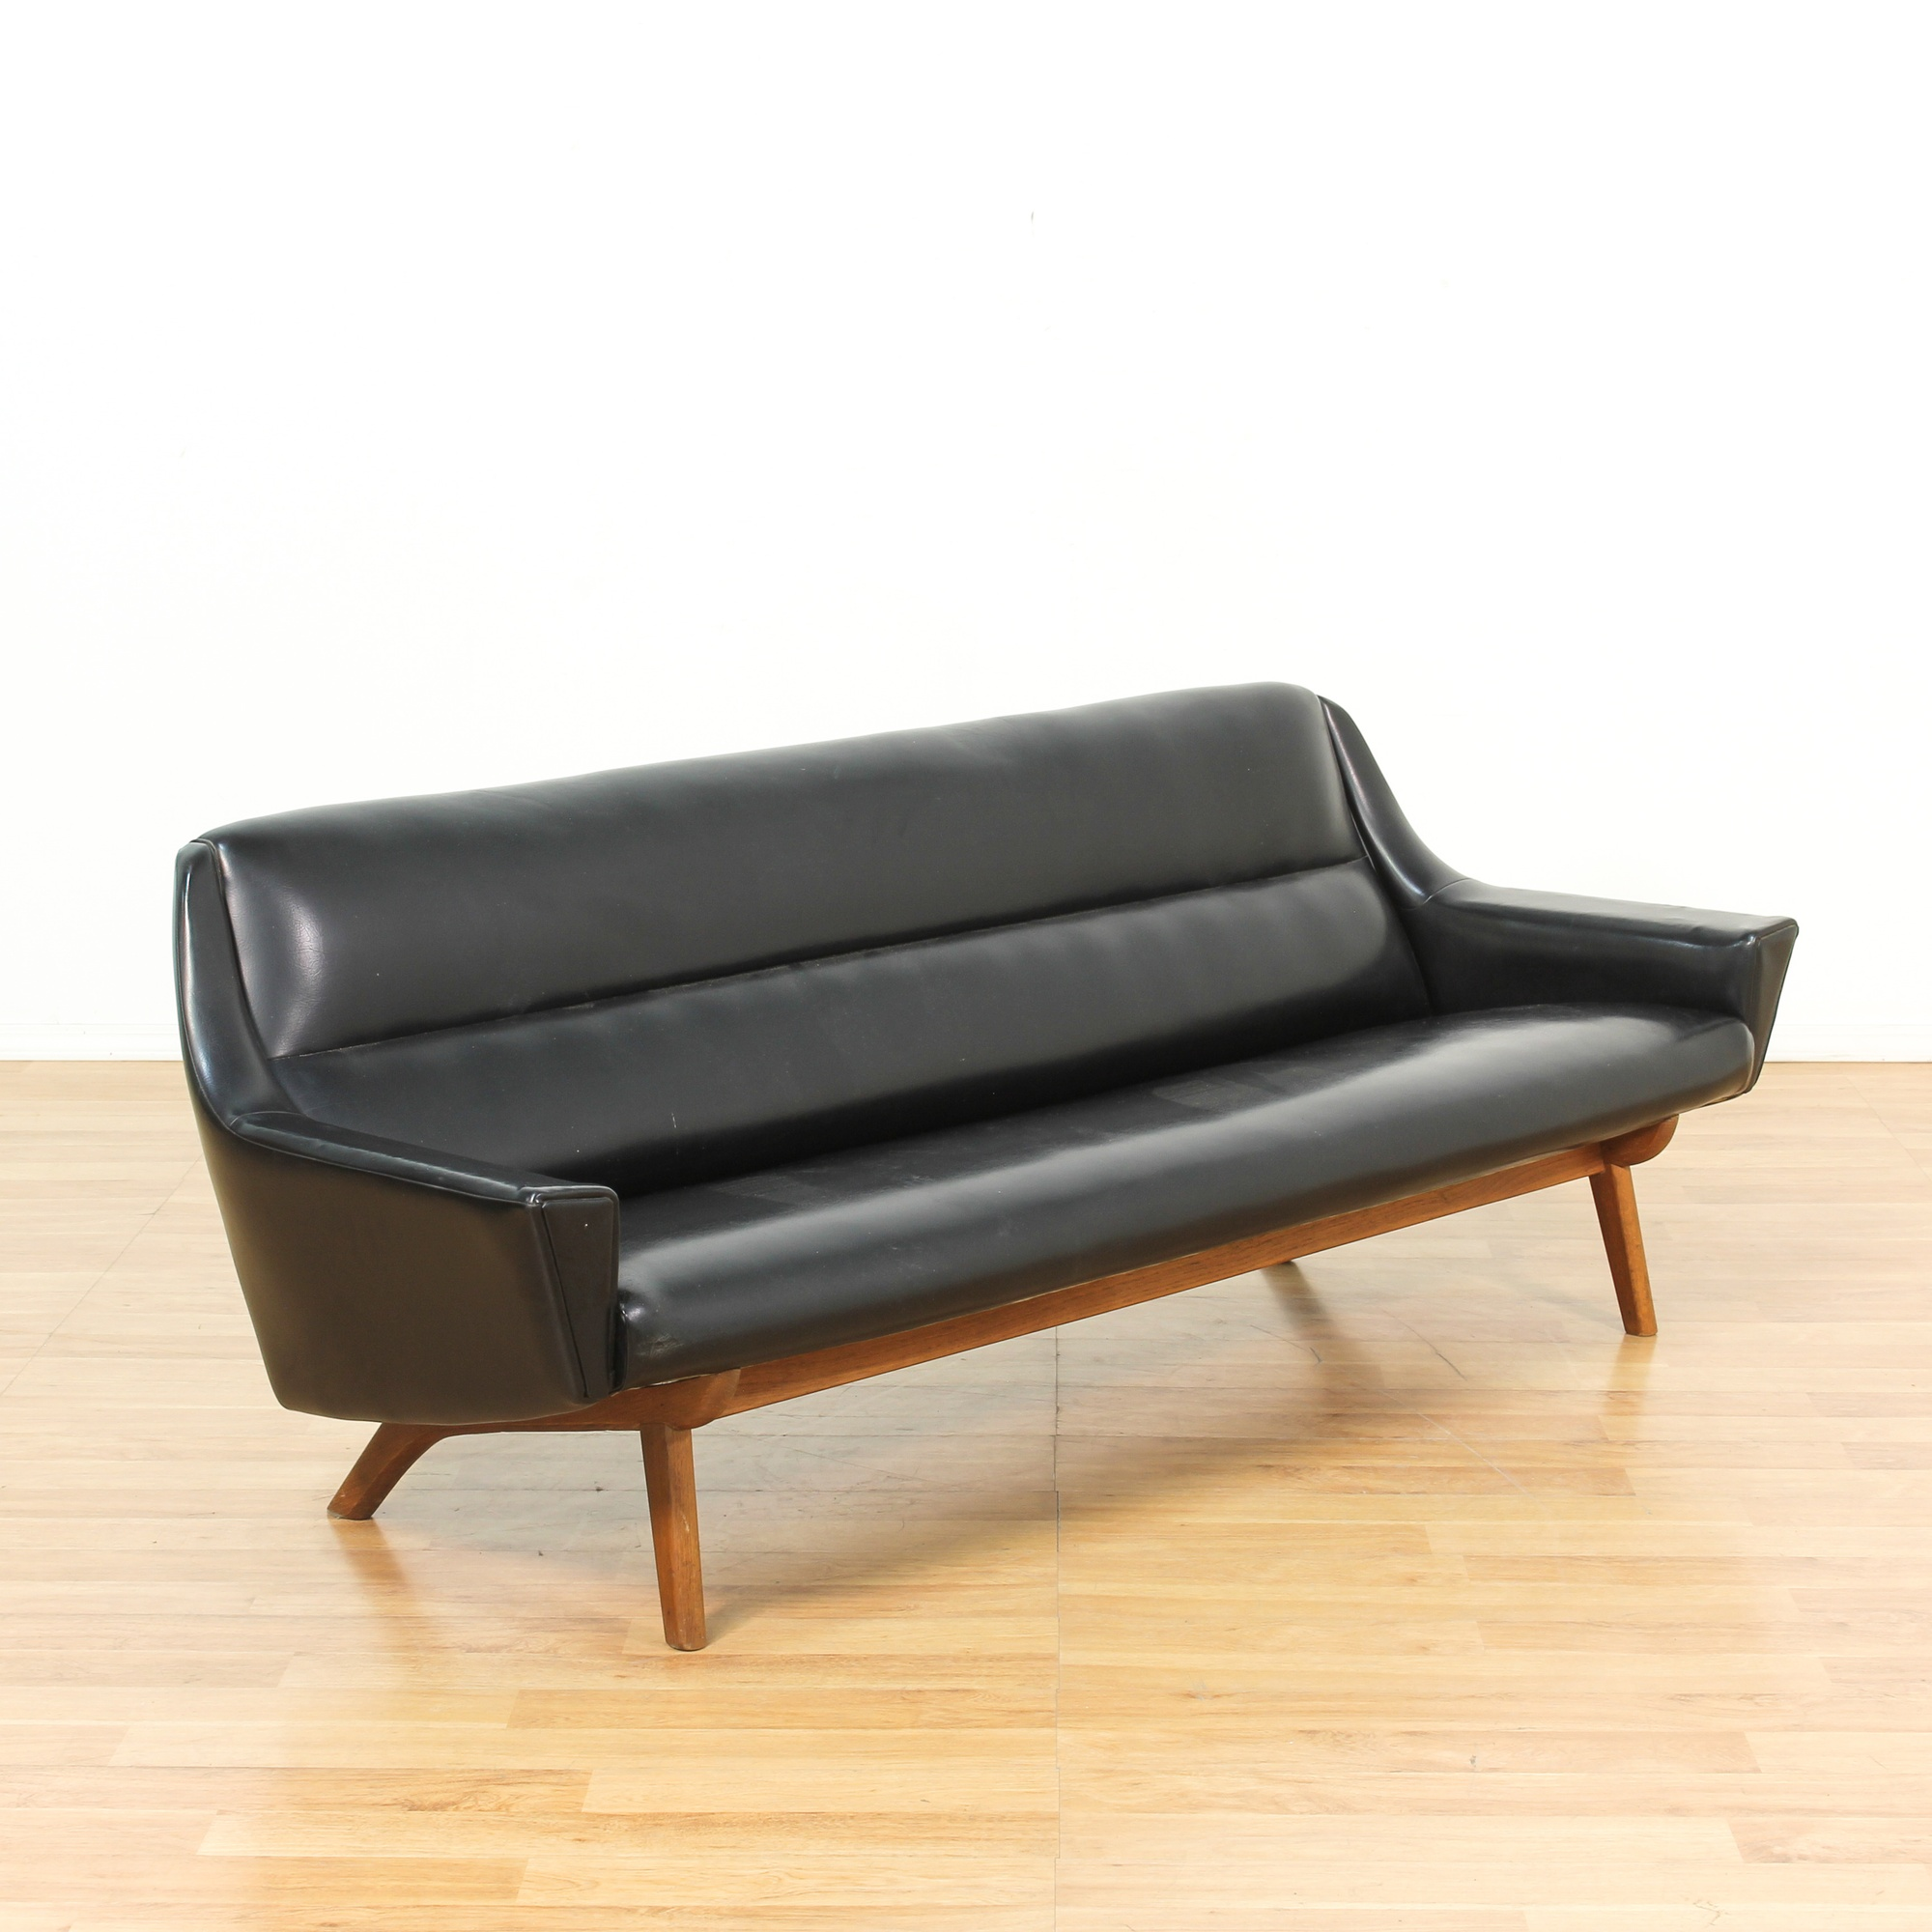 Black Danish Modern Sofa w/ Wood Legs | Loveseat Vintage ...